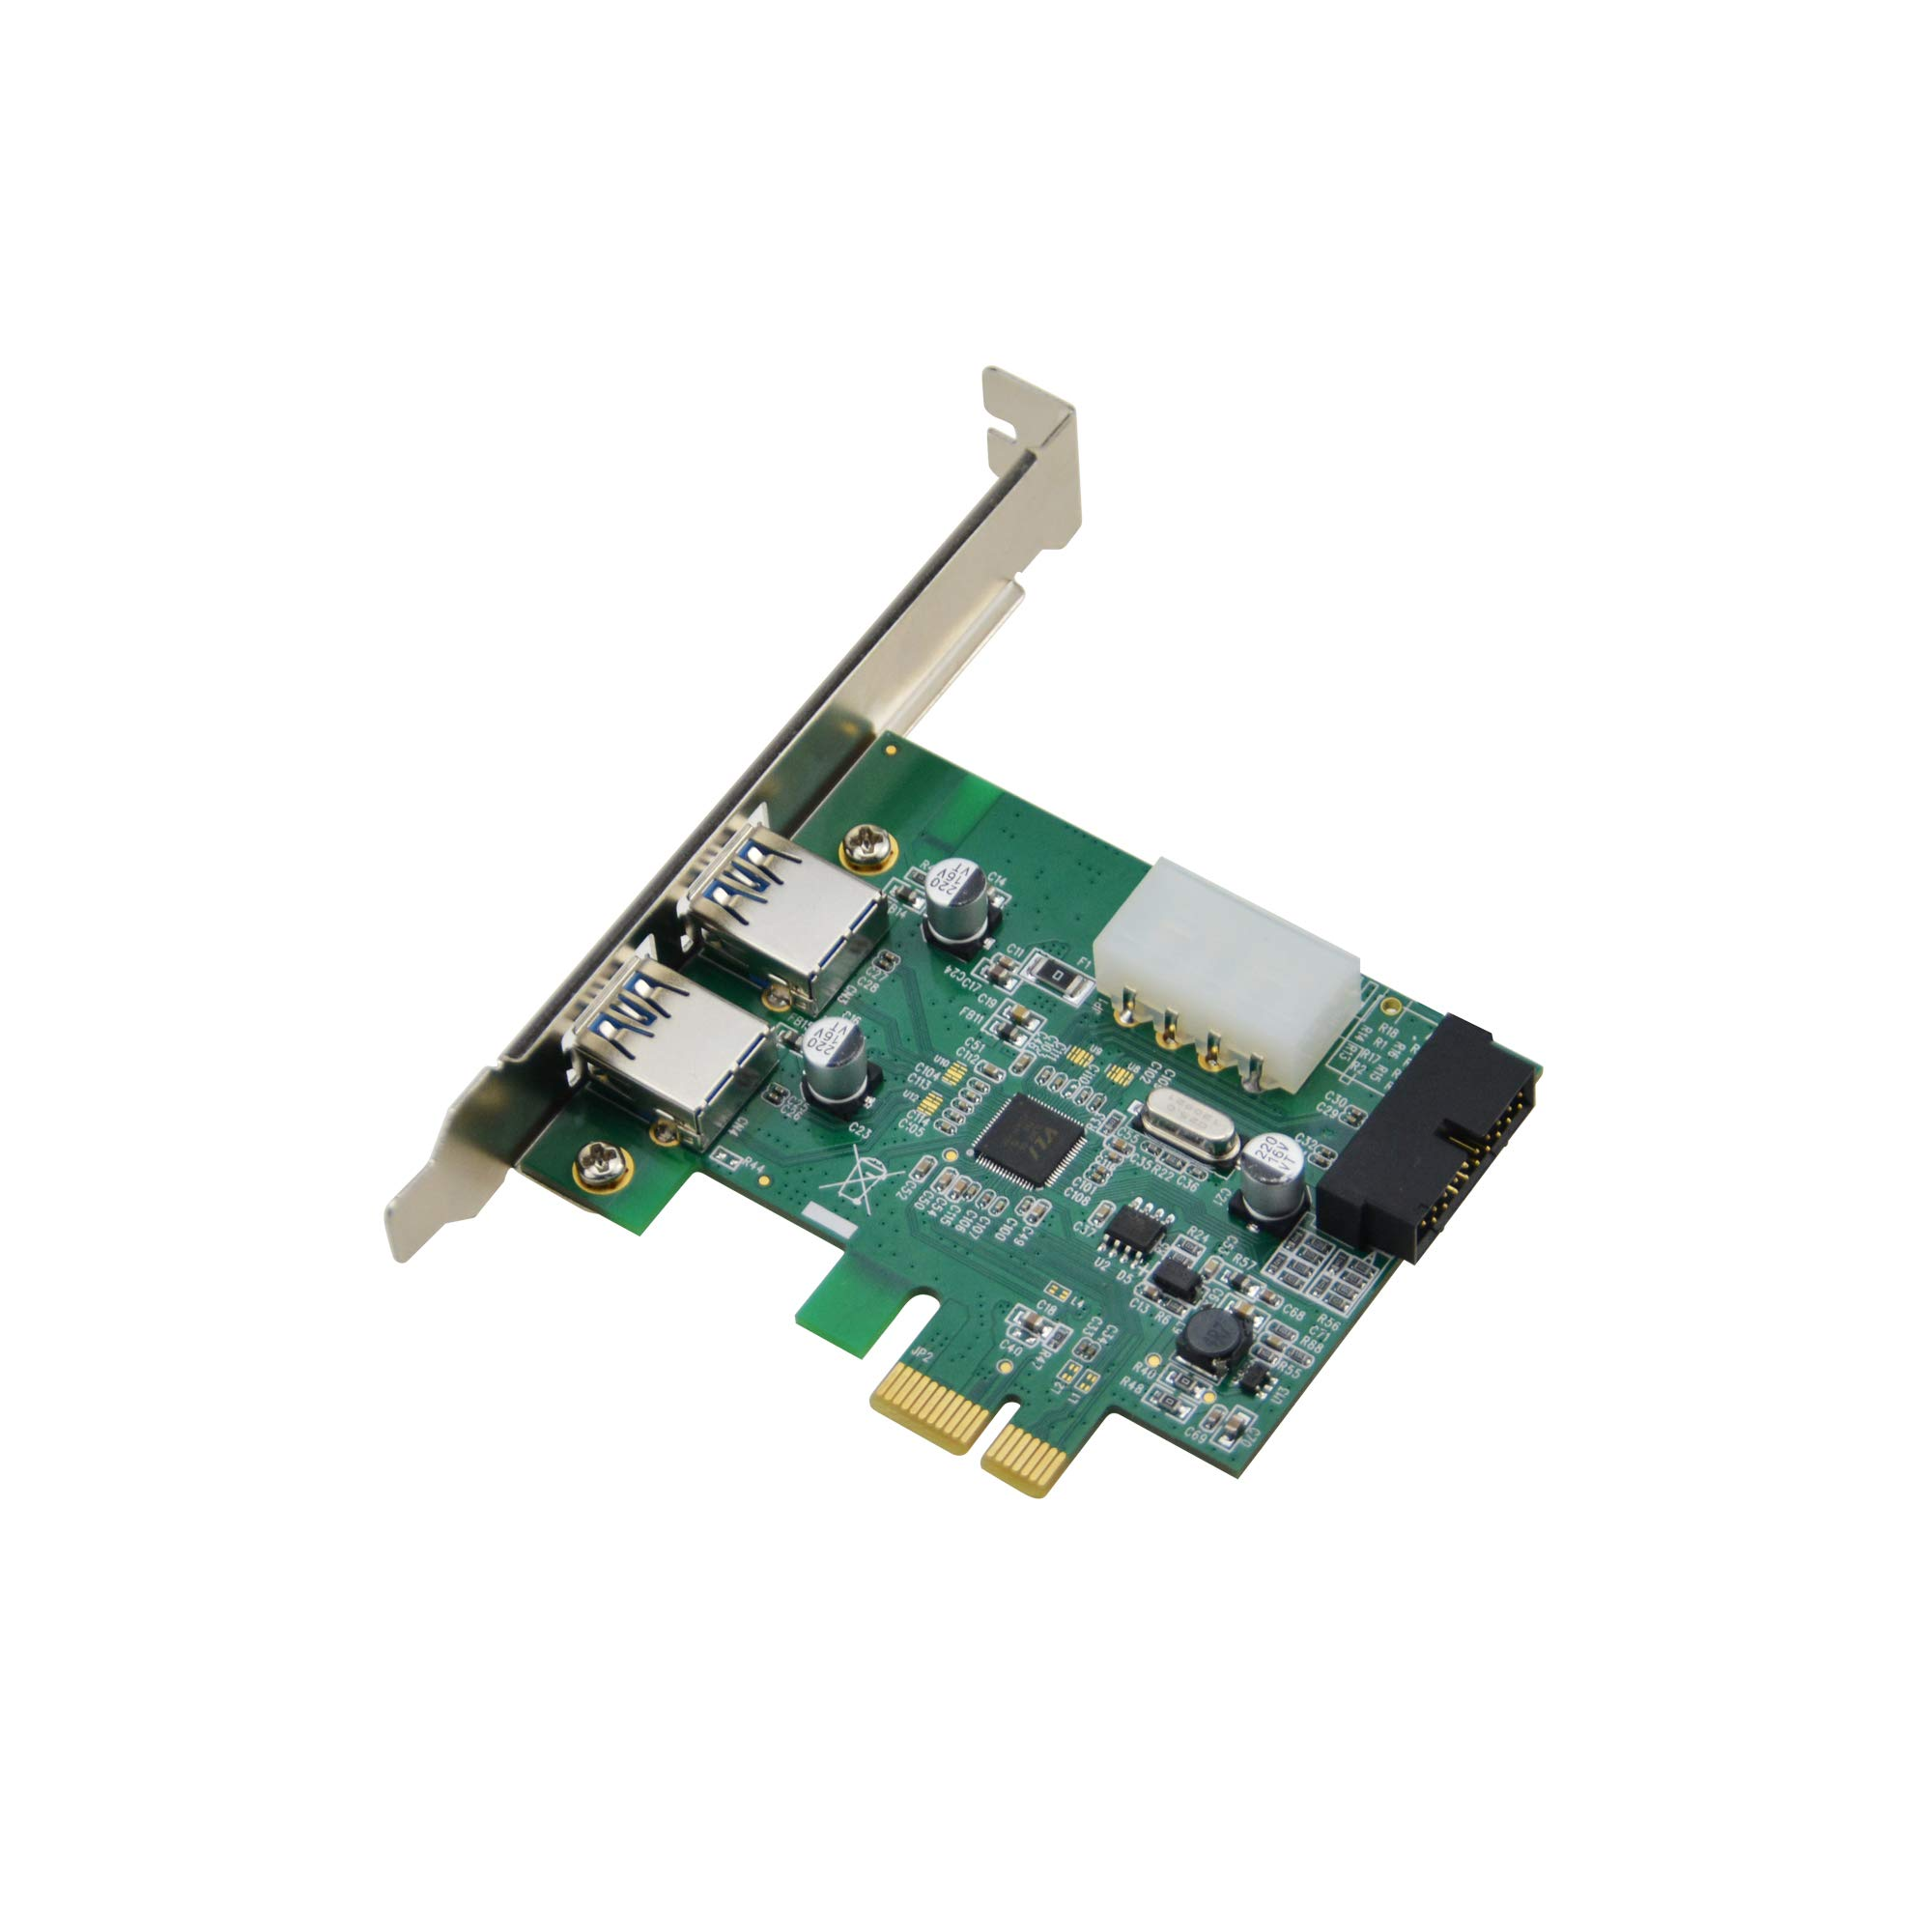 A Adwits Pcie 1x To Usb 3.1 Gen 1 Type A Port X2 And 20-pin